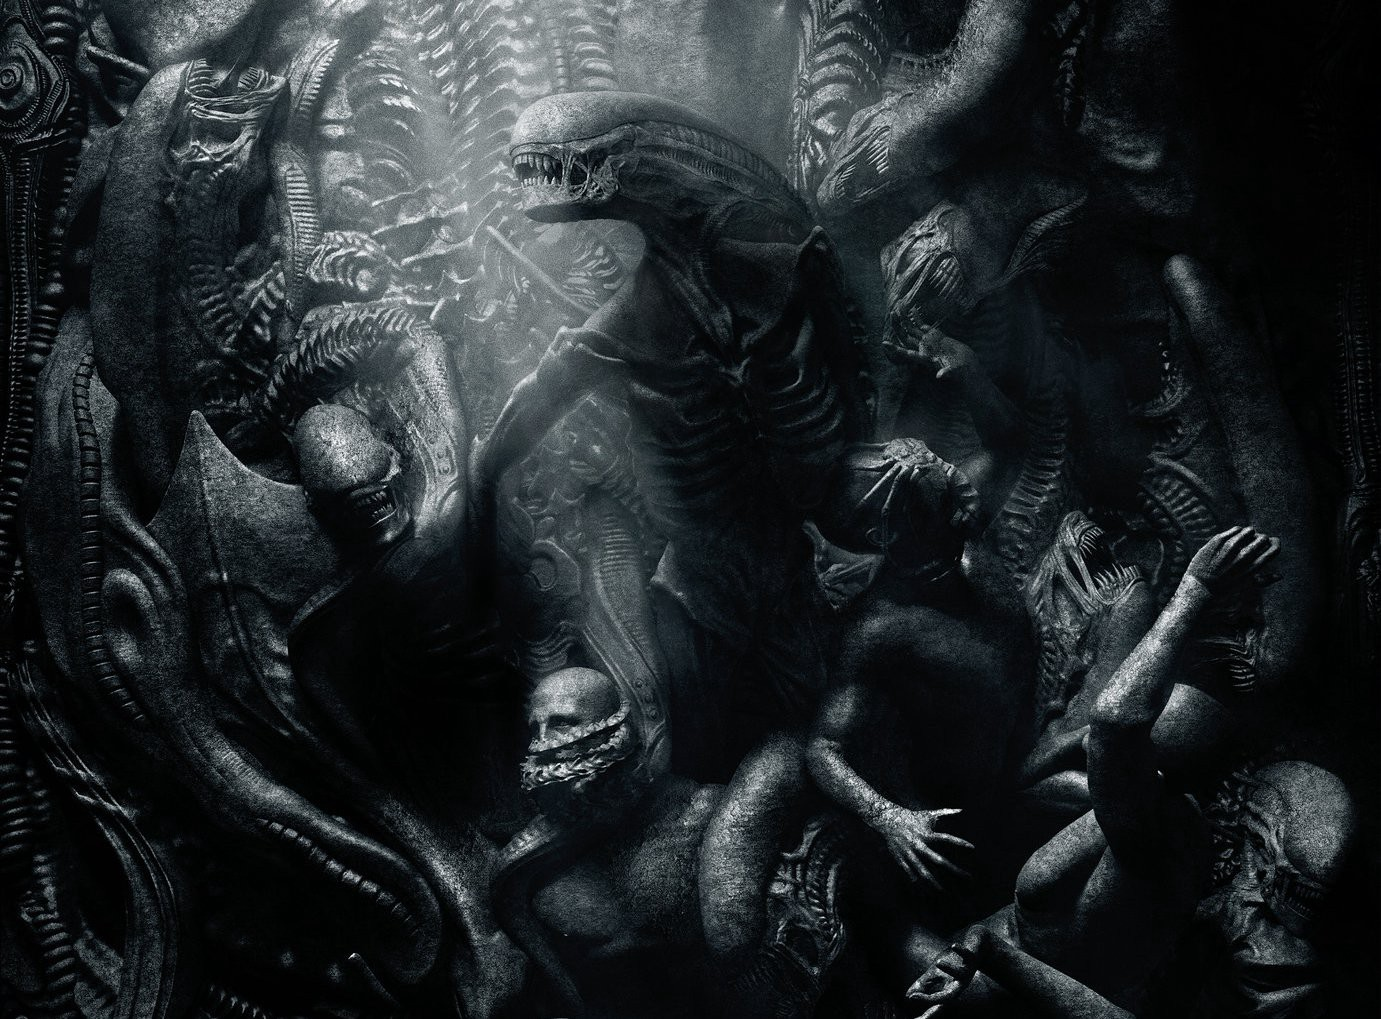 the new alien films give us bad answers to all the wrong questions